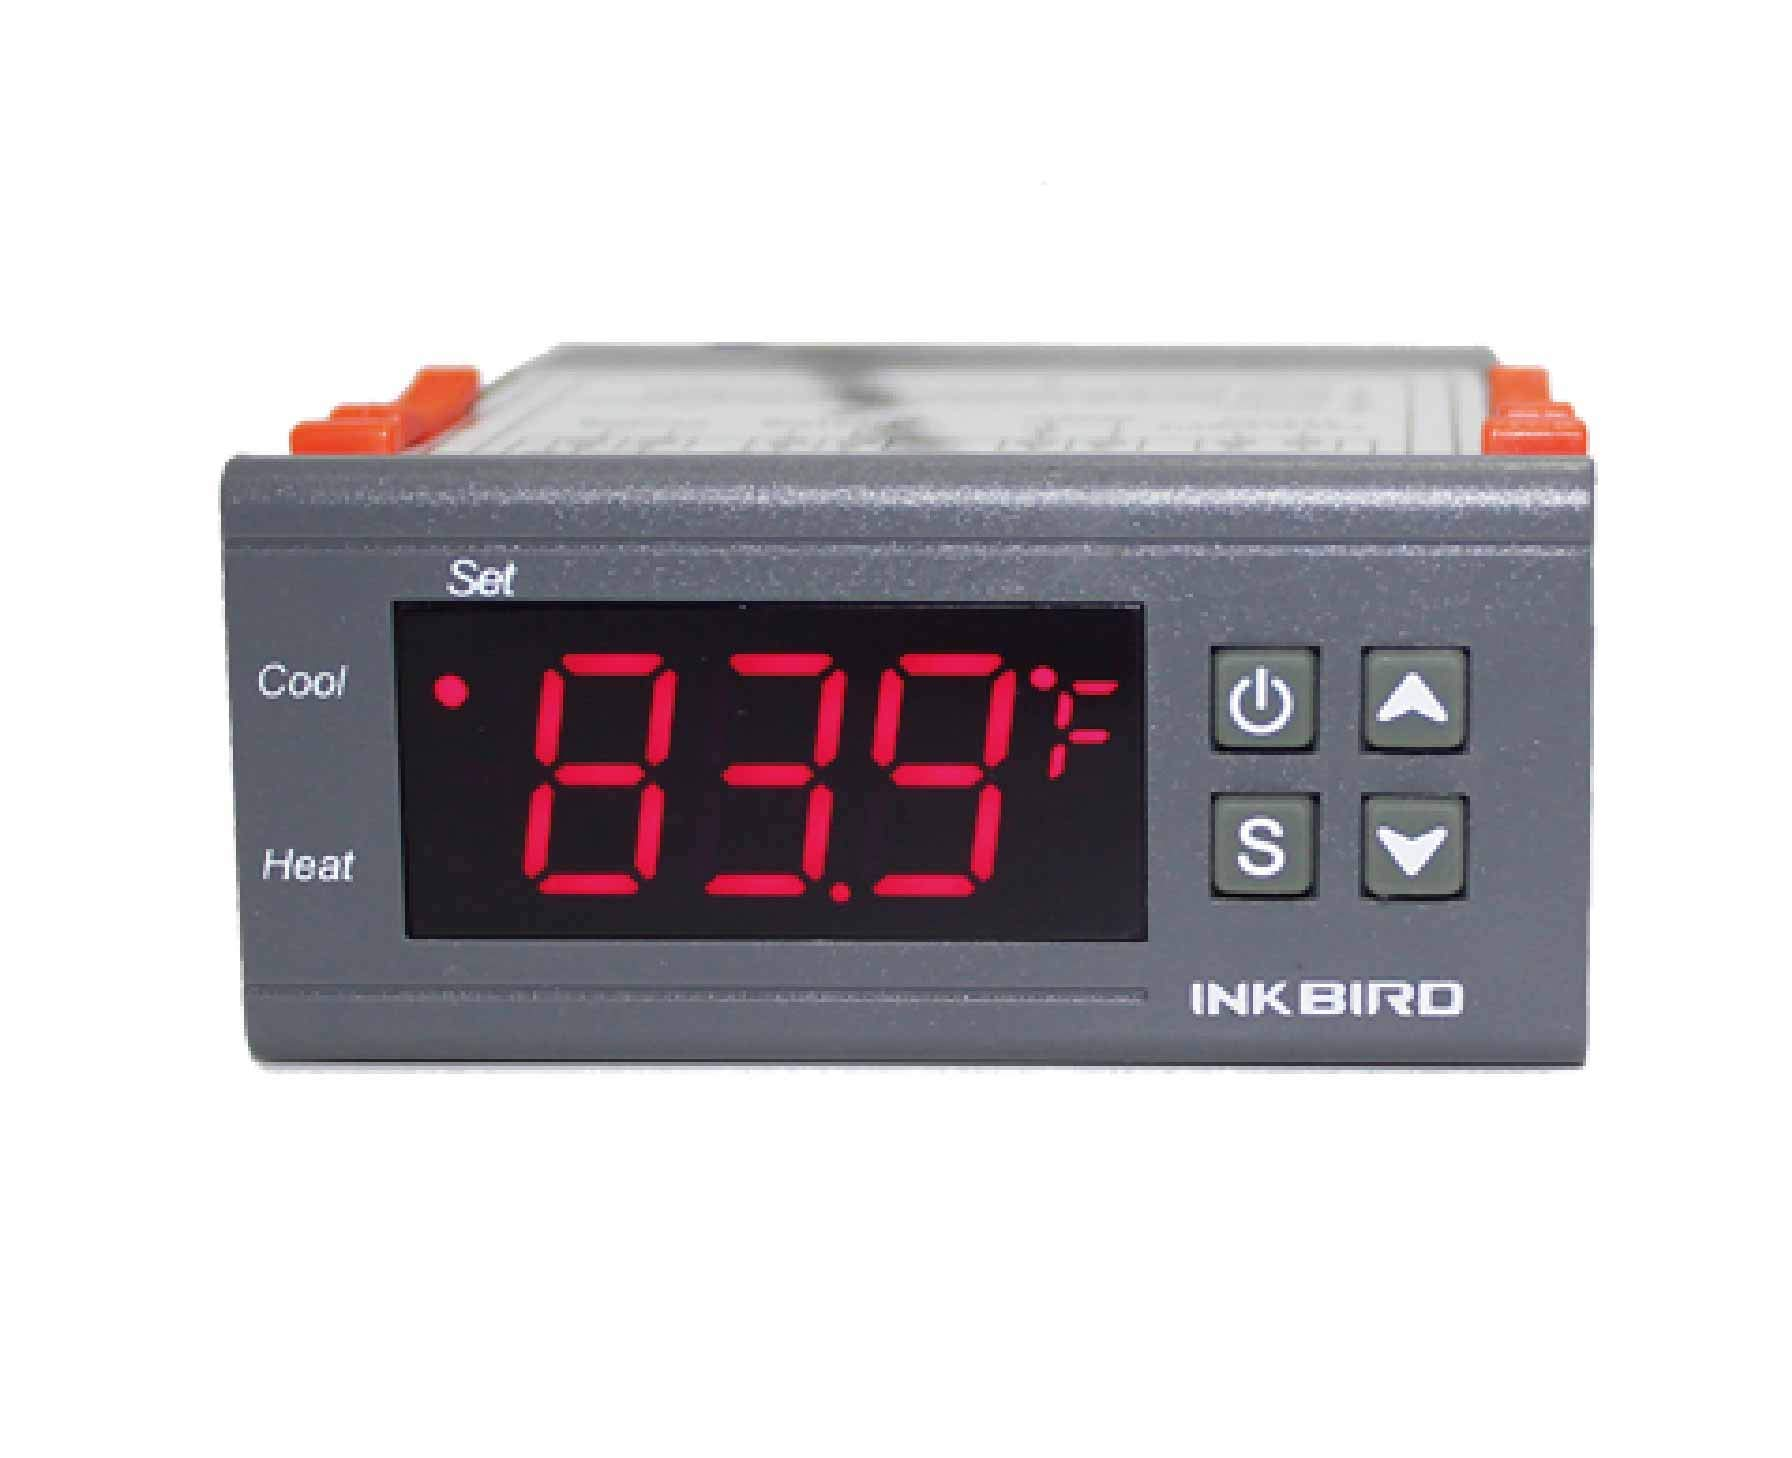 Inkbird Dual Stage DV 12V Digital Temperature Controller Fahrenheit Thermostat Heating and Cooling for Homebrewing Brew Fermenter Fridge Incubator Greenhouse